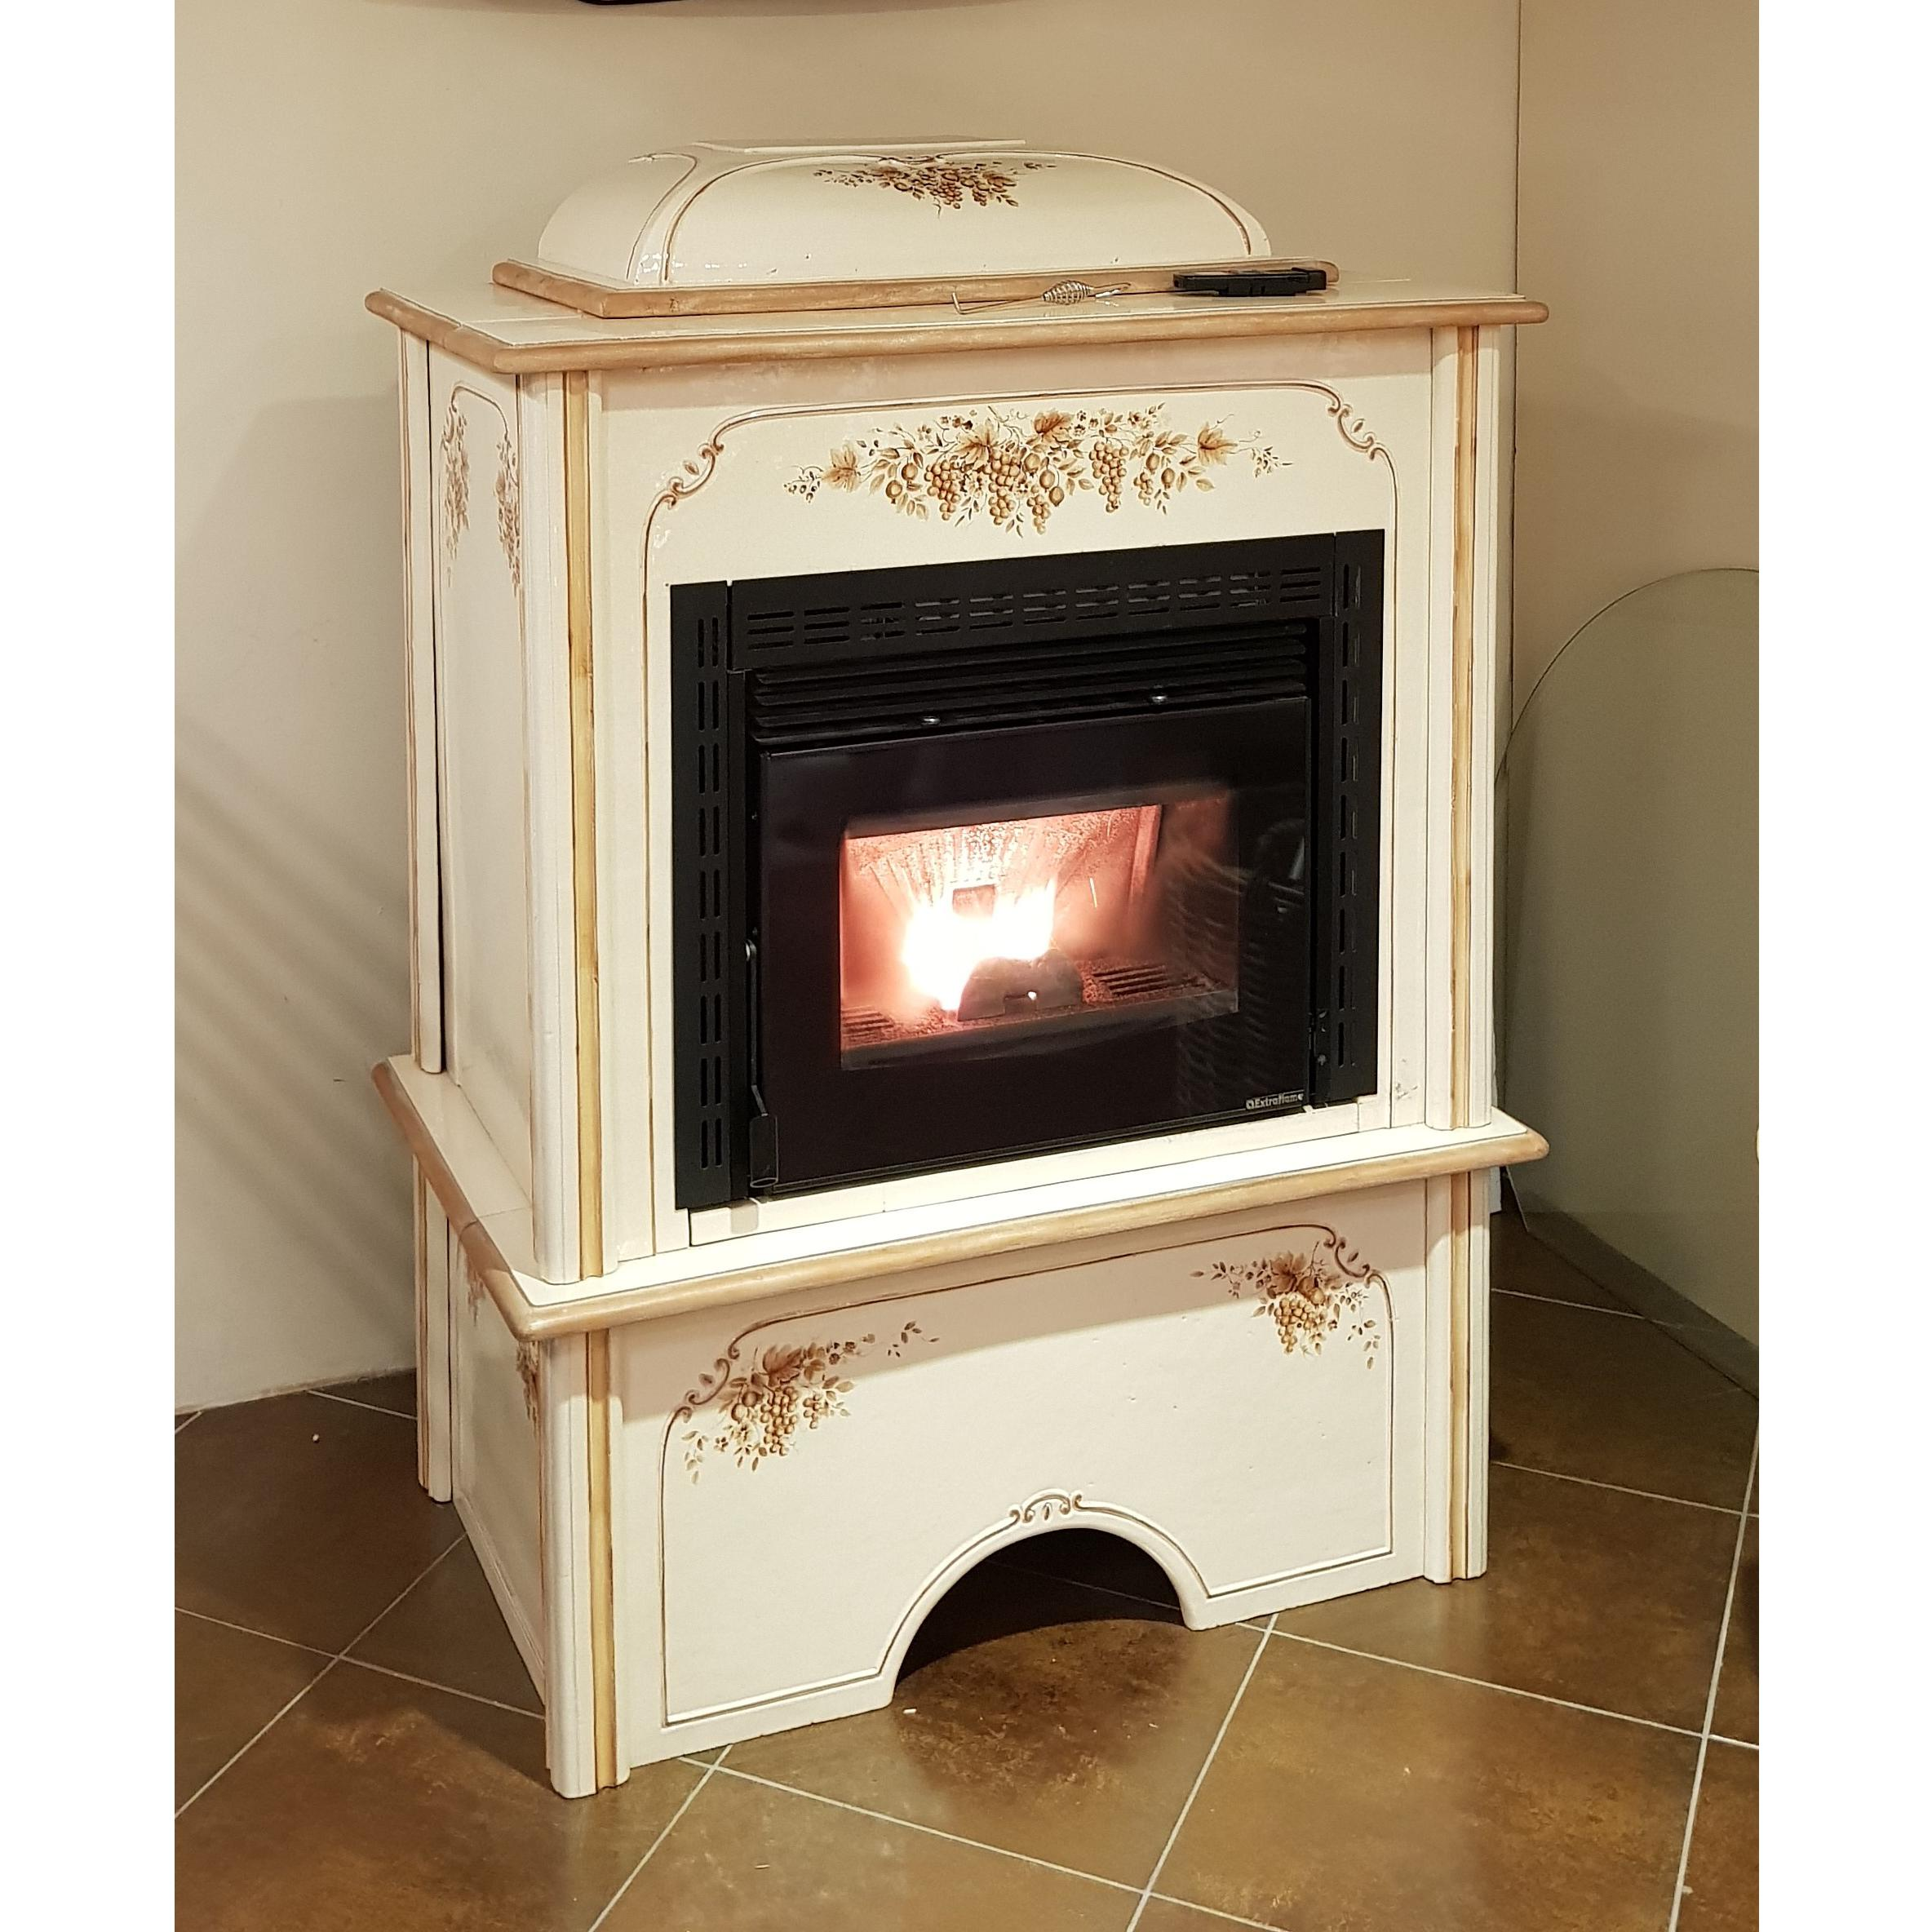 Pellet stoves: heating with comfort